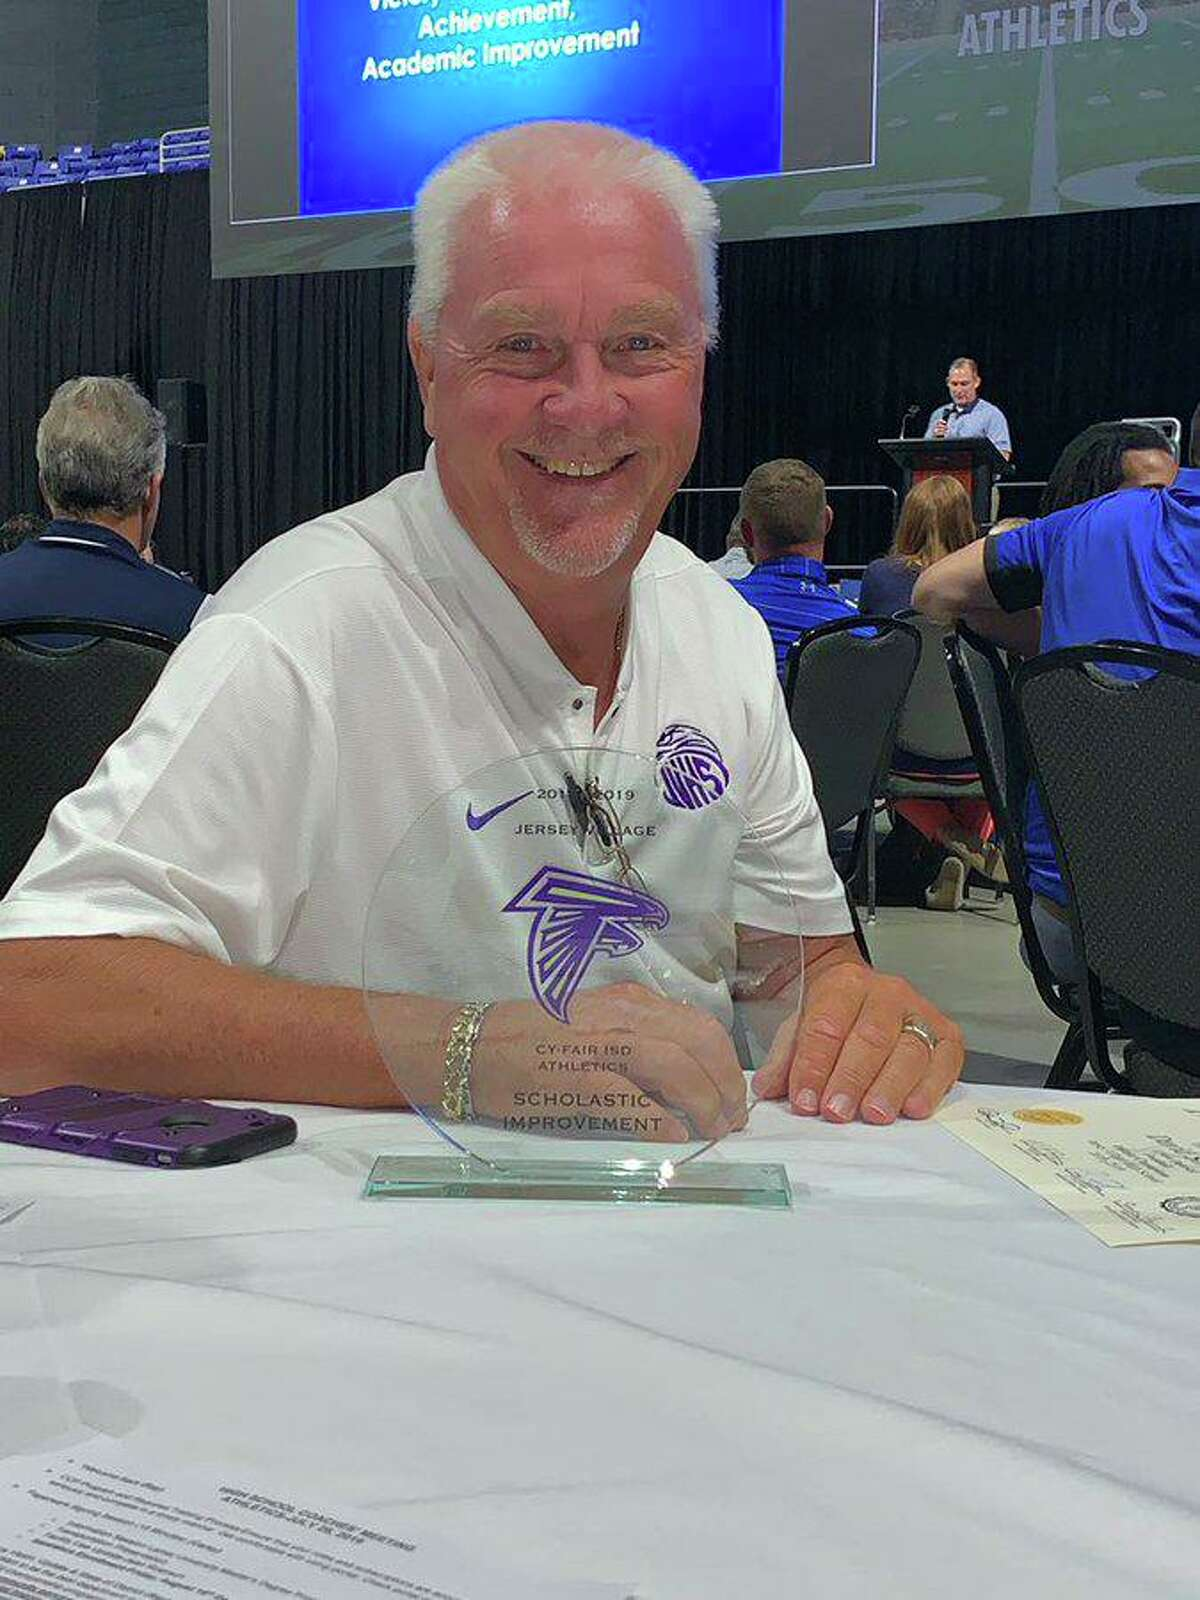 Jersey Village athletic coordinator/head football coach David Snokhous is all smiles after the Falcons won the Academic Improvement Award at the Cypress-Fairbanks ISD Athletic Department Annual HS Coaches training, July 29, at the Berry Center.